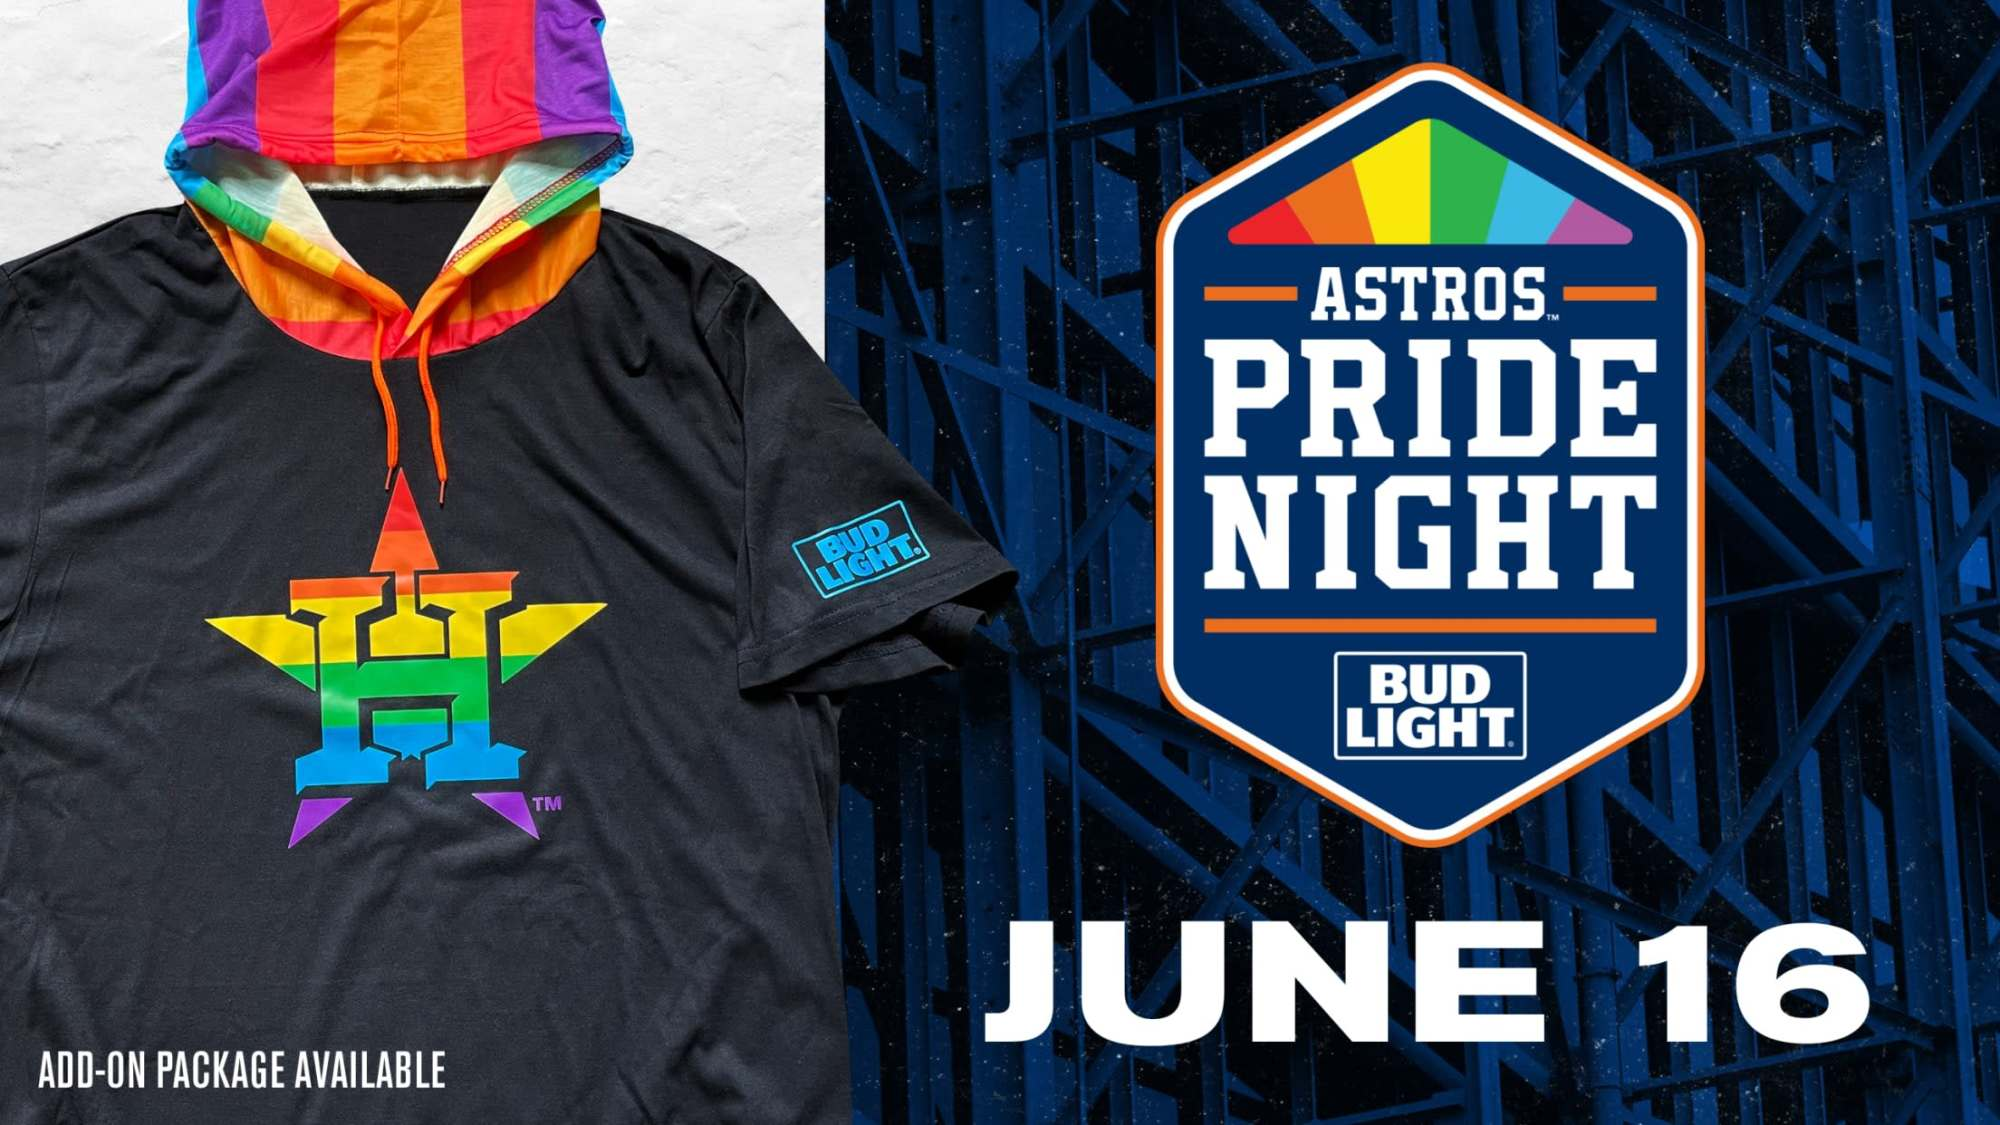 The Houston Astros will give away a rainbow hoodie for their Pride night.